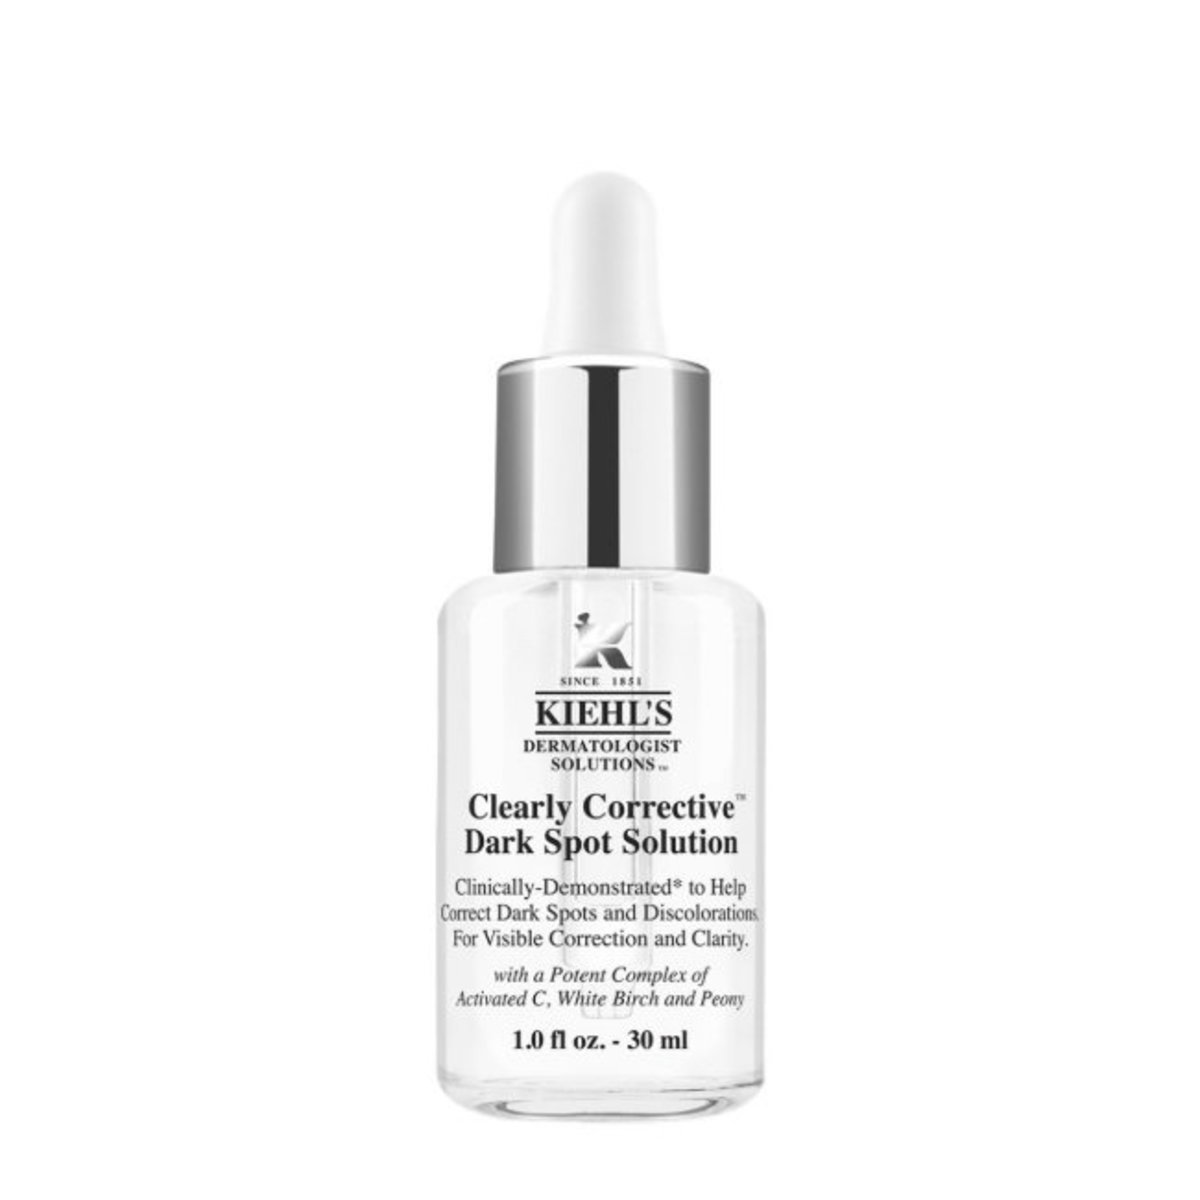 Kiehl's- Clearly Corrective Dark Spot Solution 30ml (3605970202637)  [Parallel Import]